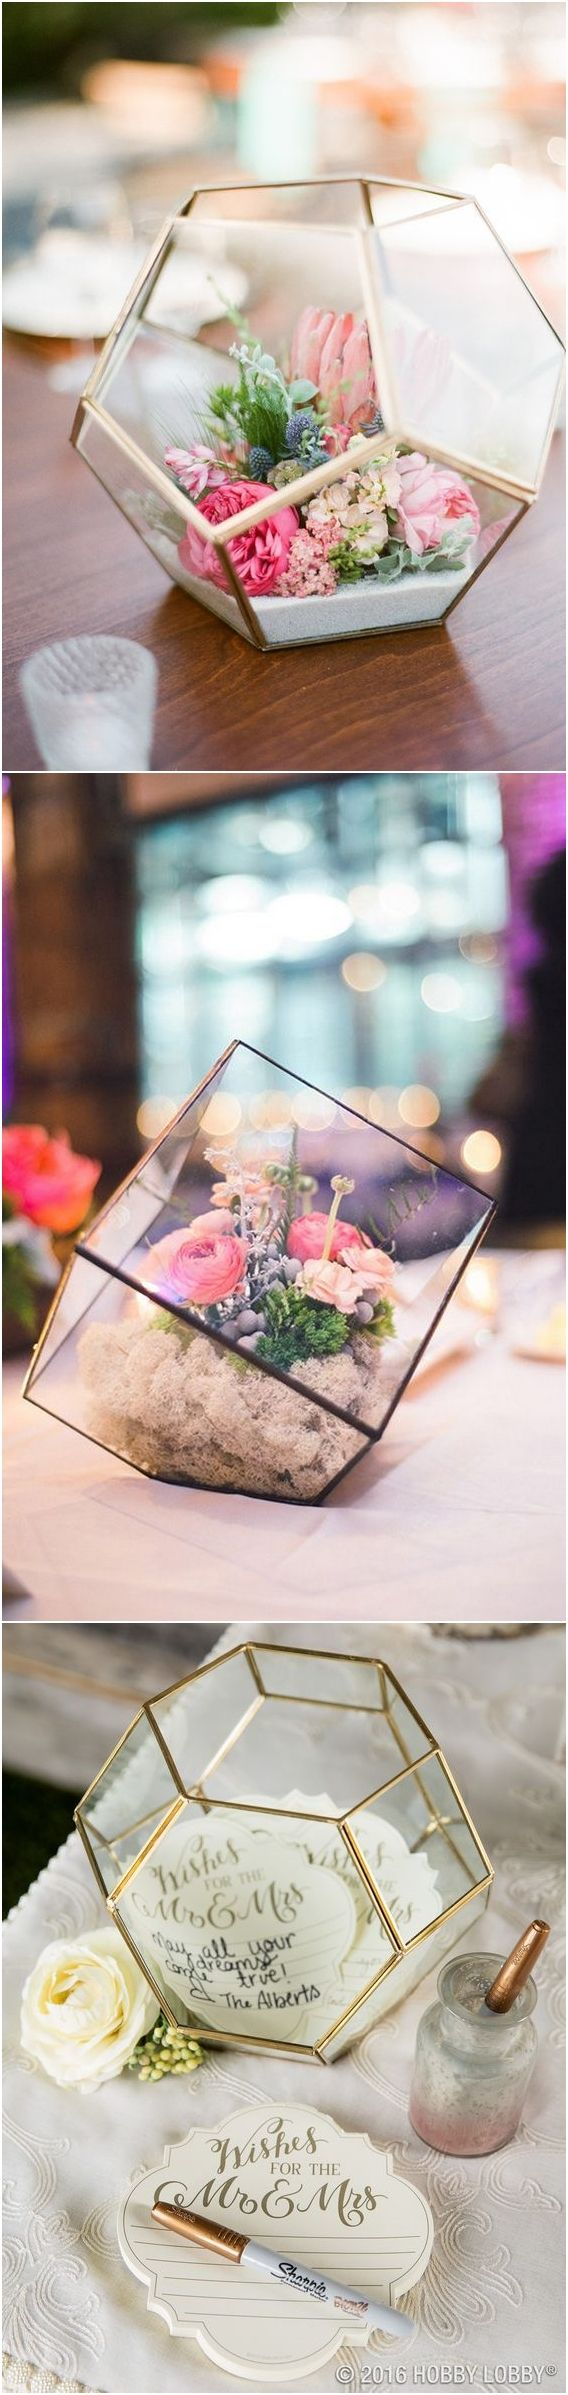 Glam Geometric & Terrarium Wedding Ideas #bohoweding #weddings #wedidngideas